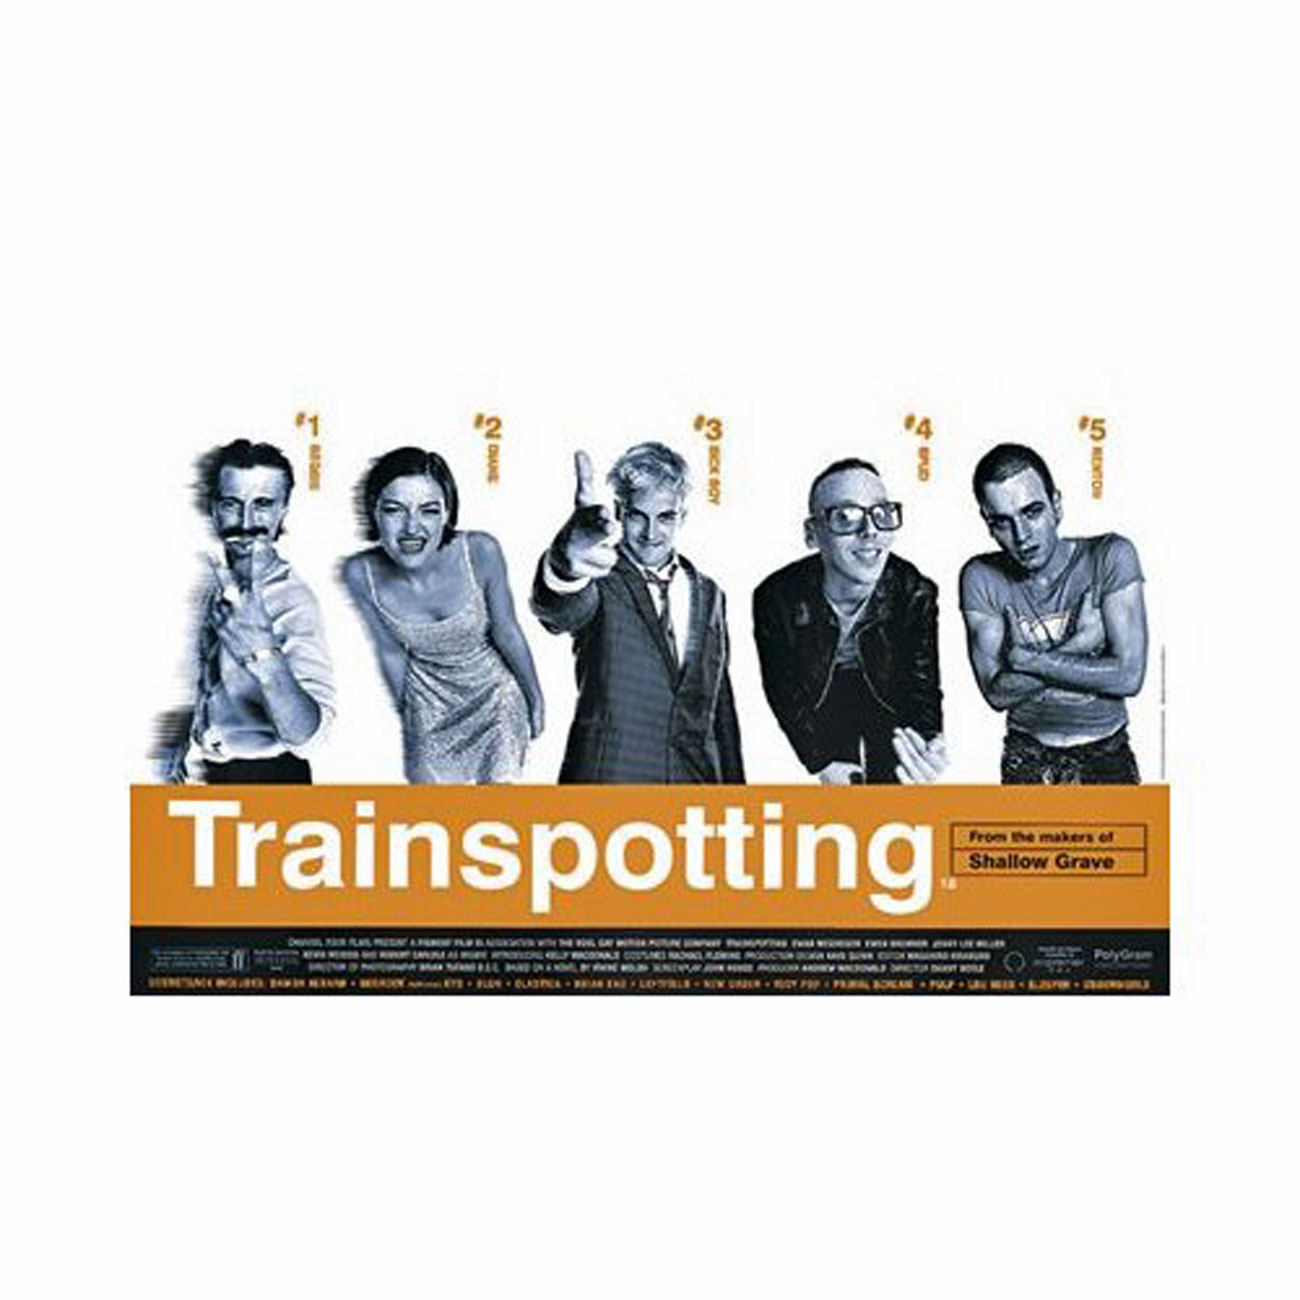 Trainspotting Poster Ebay Maxi Poster Trainspotting